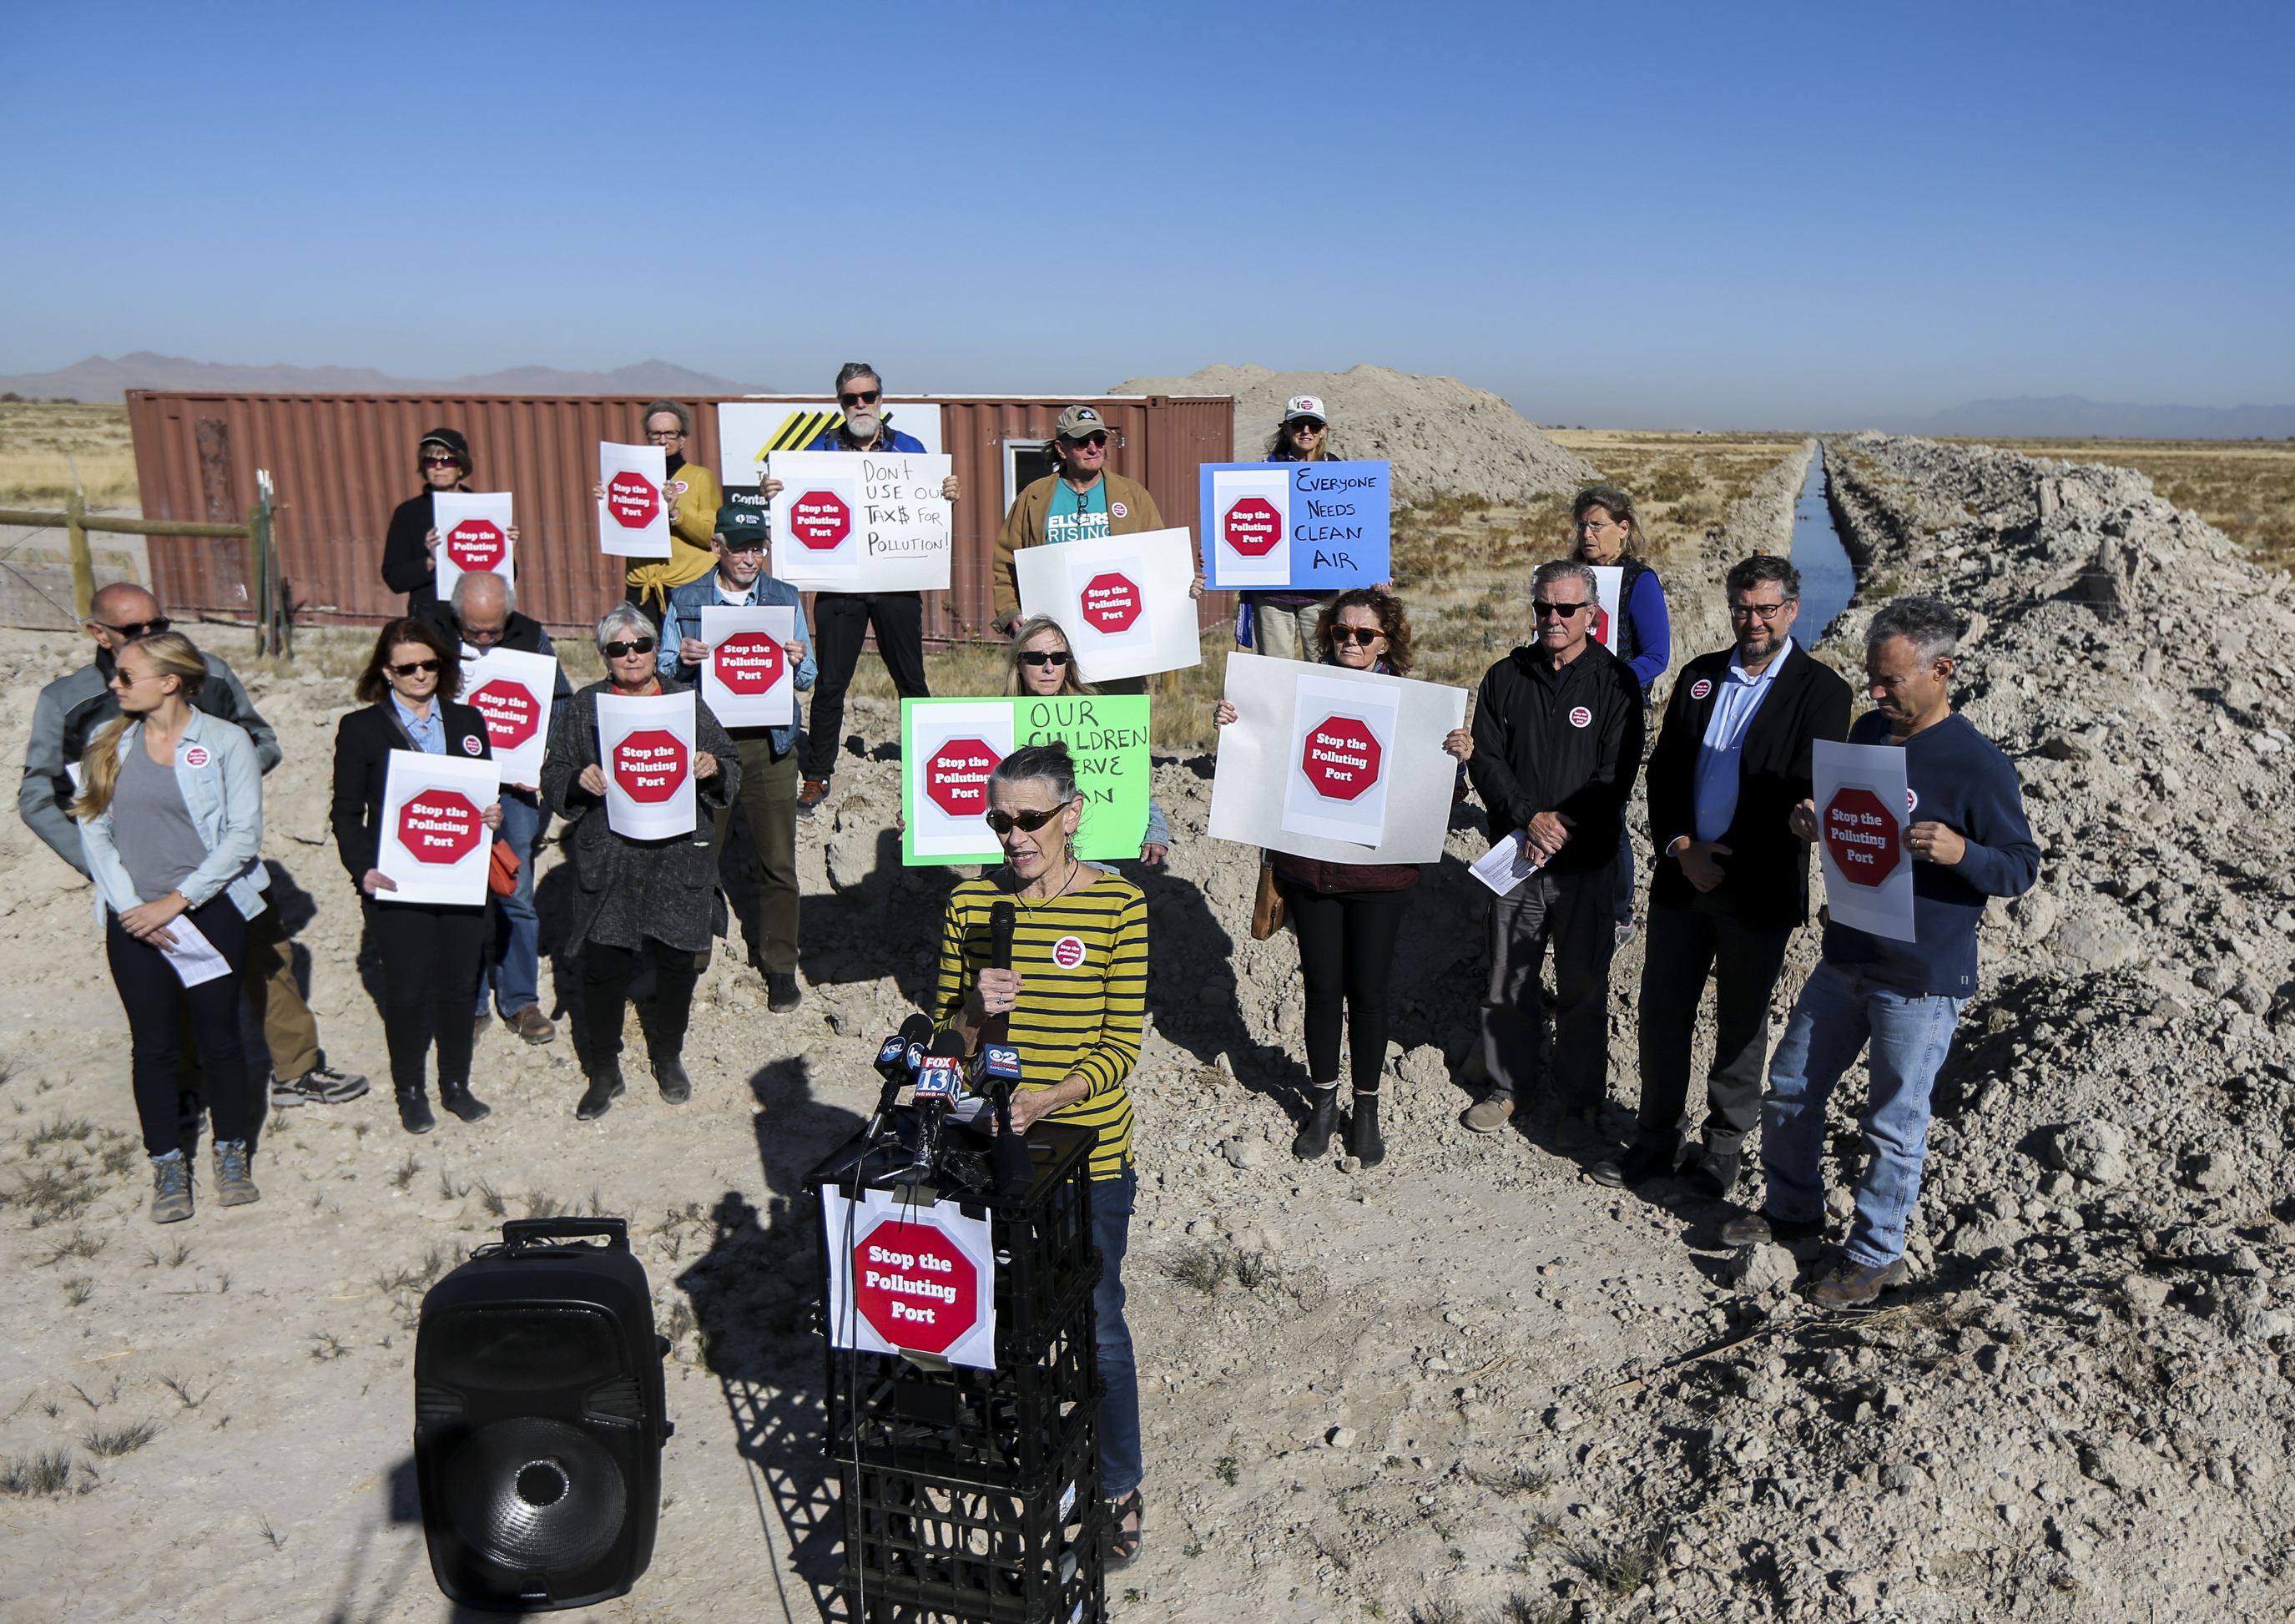 Heather Dove, president of the Great Salt Lake Audubon Society, front center, speaks during a press conference held west of the Salt Lake City International Airport on Wednesday, Oct. 16, 2019. The group Stop the Polluting Port called for the halt of development on about 16,000 acres west of the airport, an area under the jurisdiction of the state-created Utah Inland Port Authority but also near sensitive wetland and migratory bird habitat.